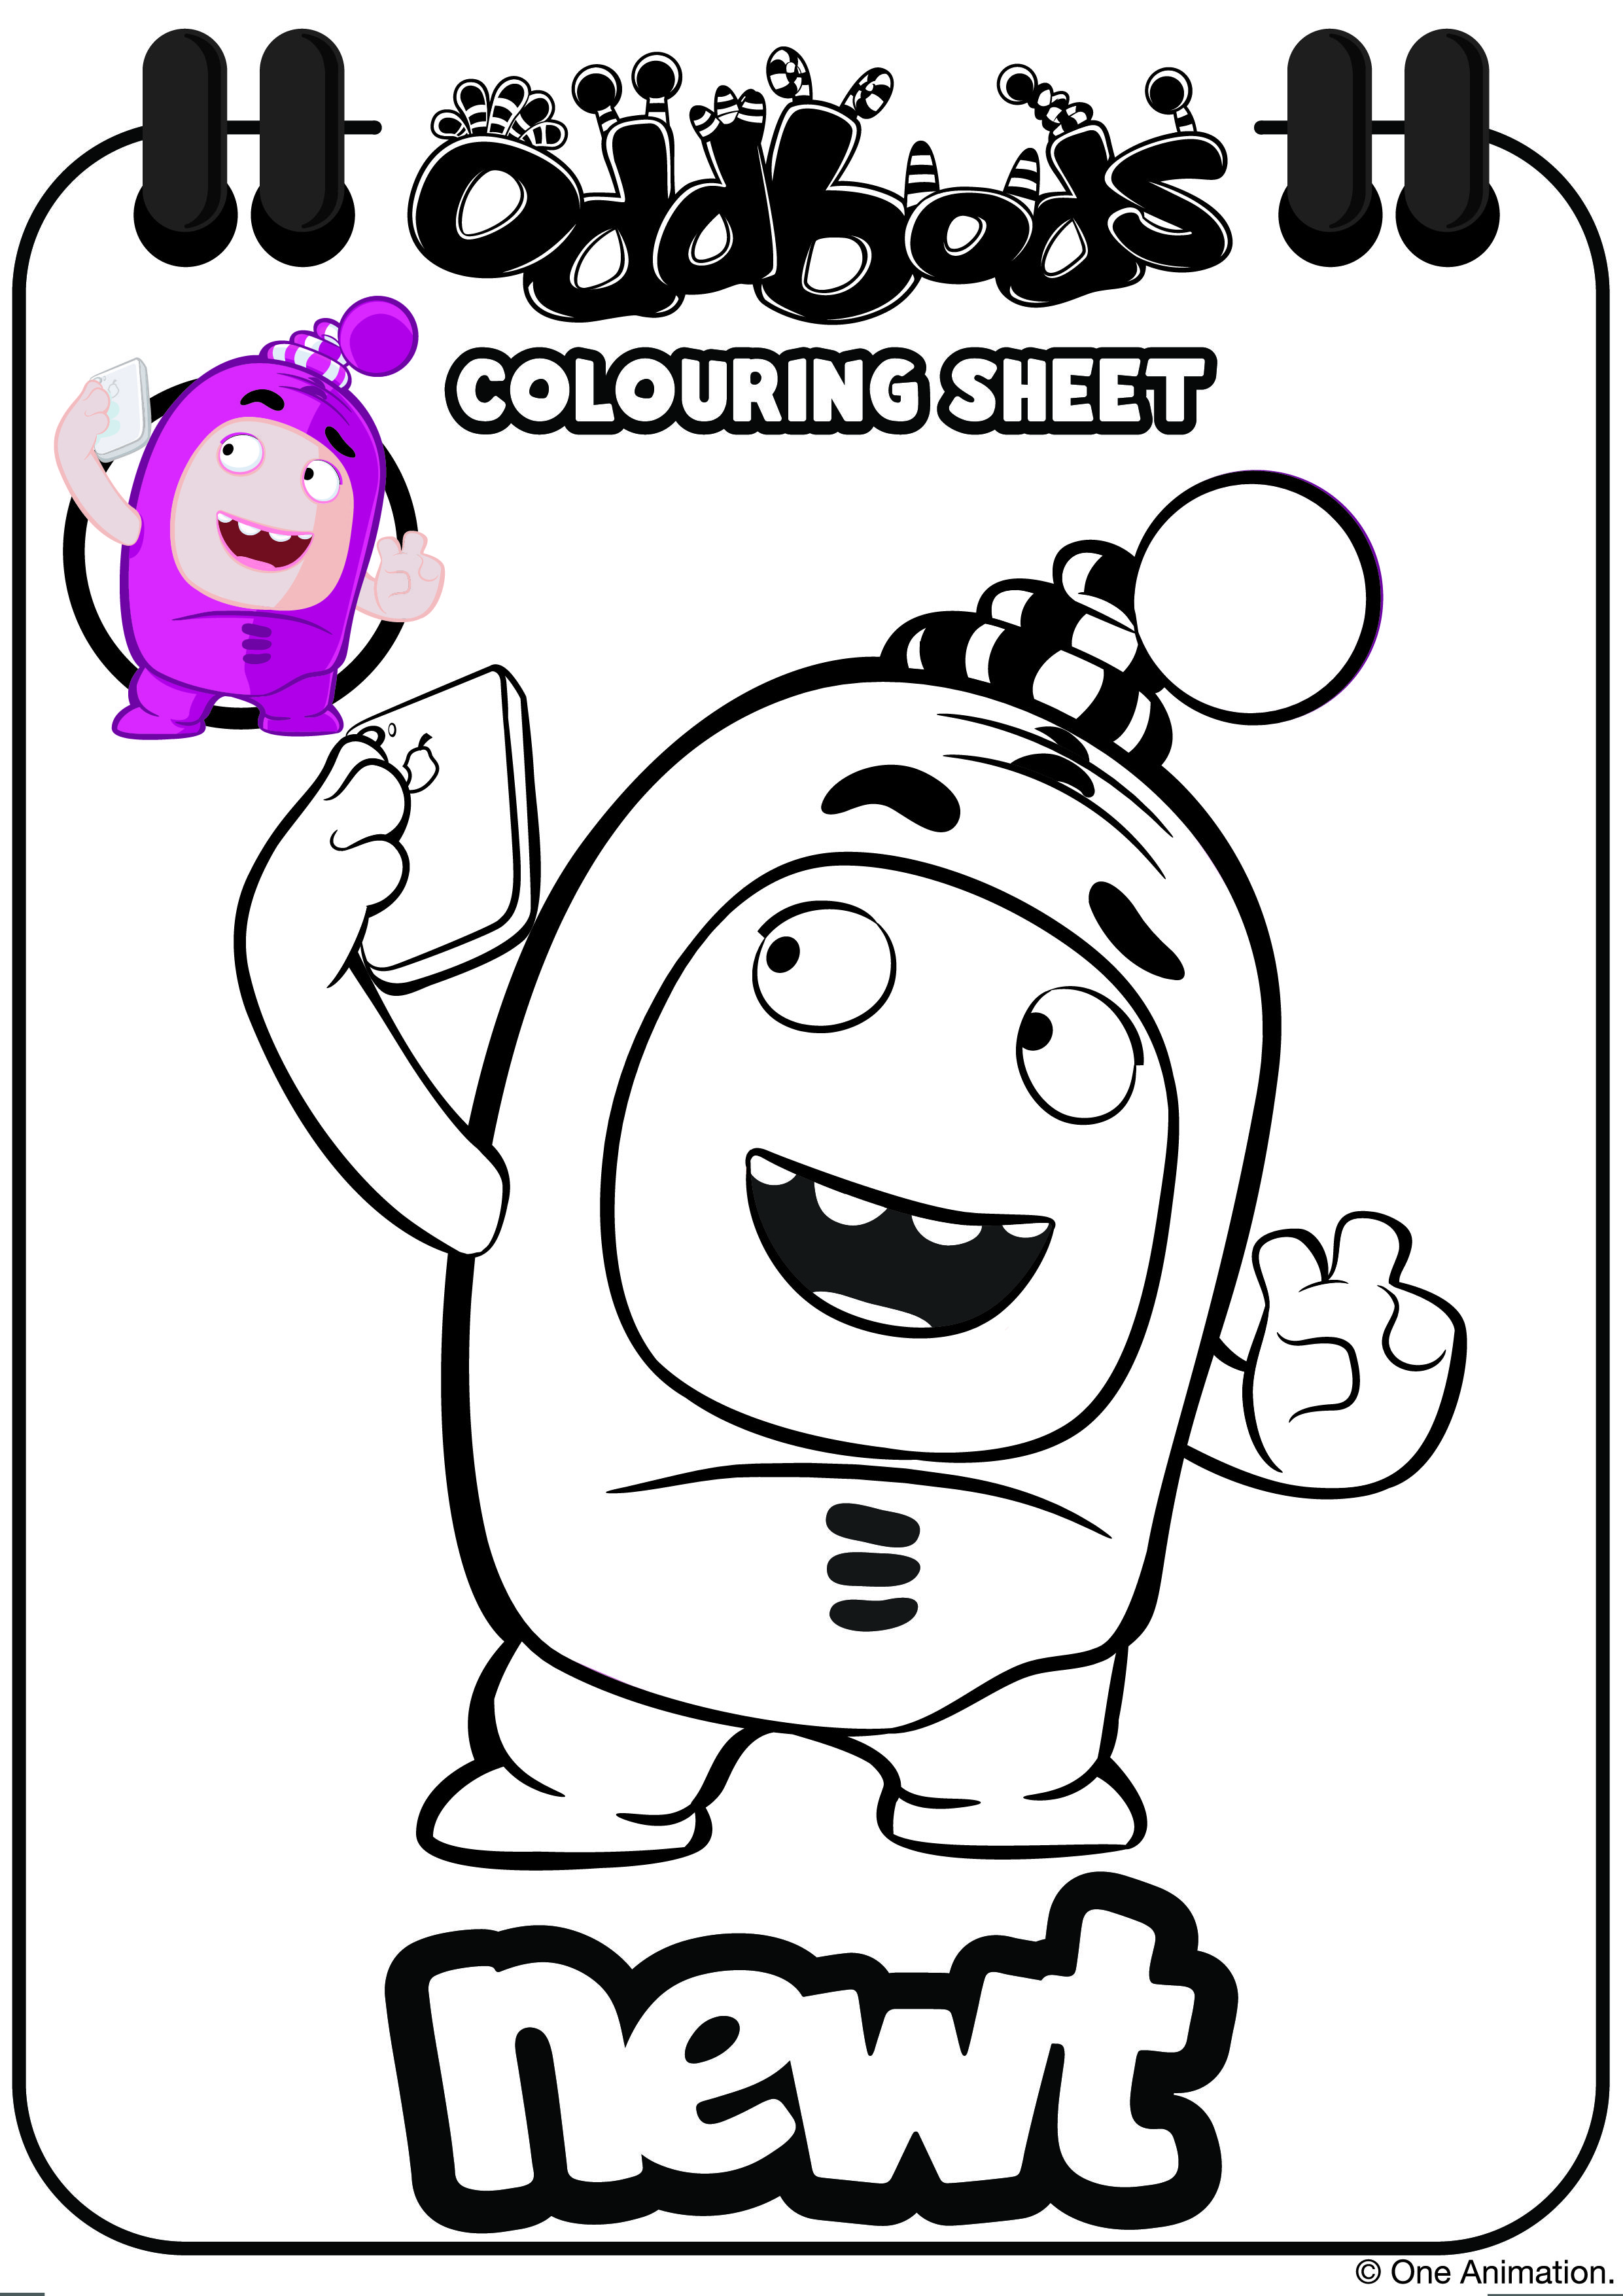 Oddbods Colouring Sheet Newt Kids Coloring Books Coloring Sheets Coloring Books